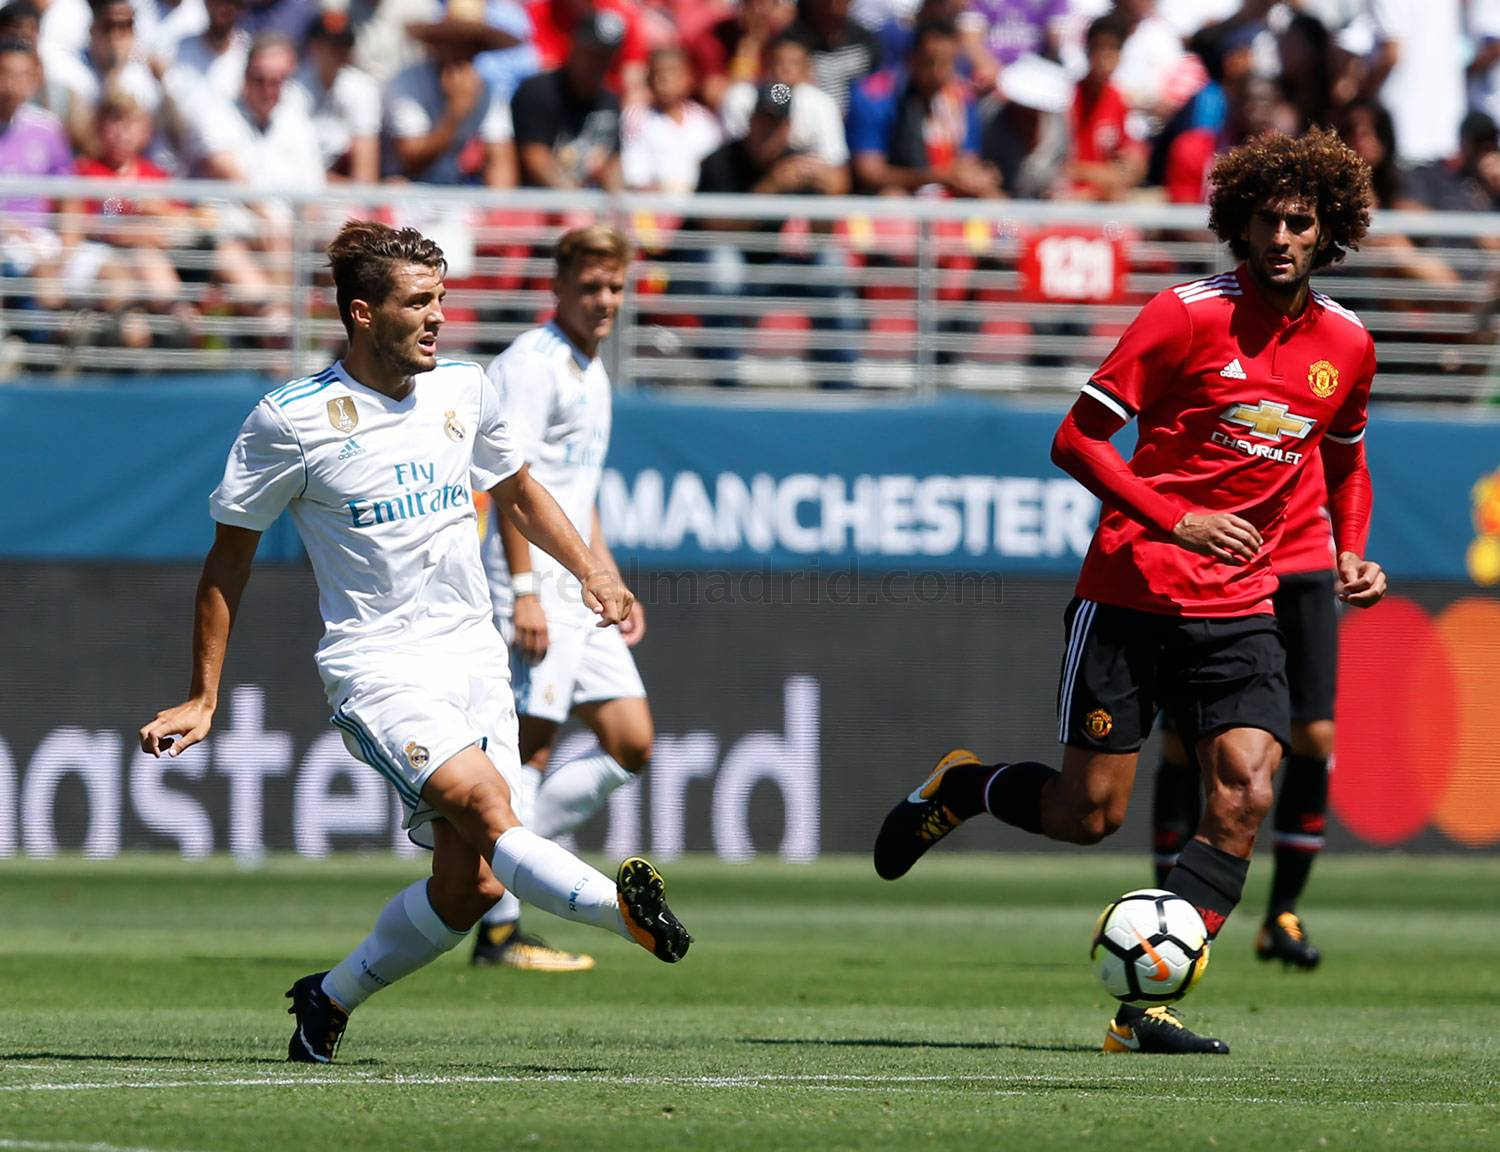 Real Madrid - Real Madrid - Manchester United - 24-07-2017